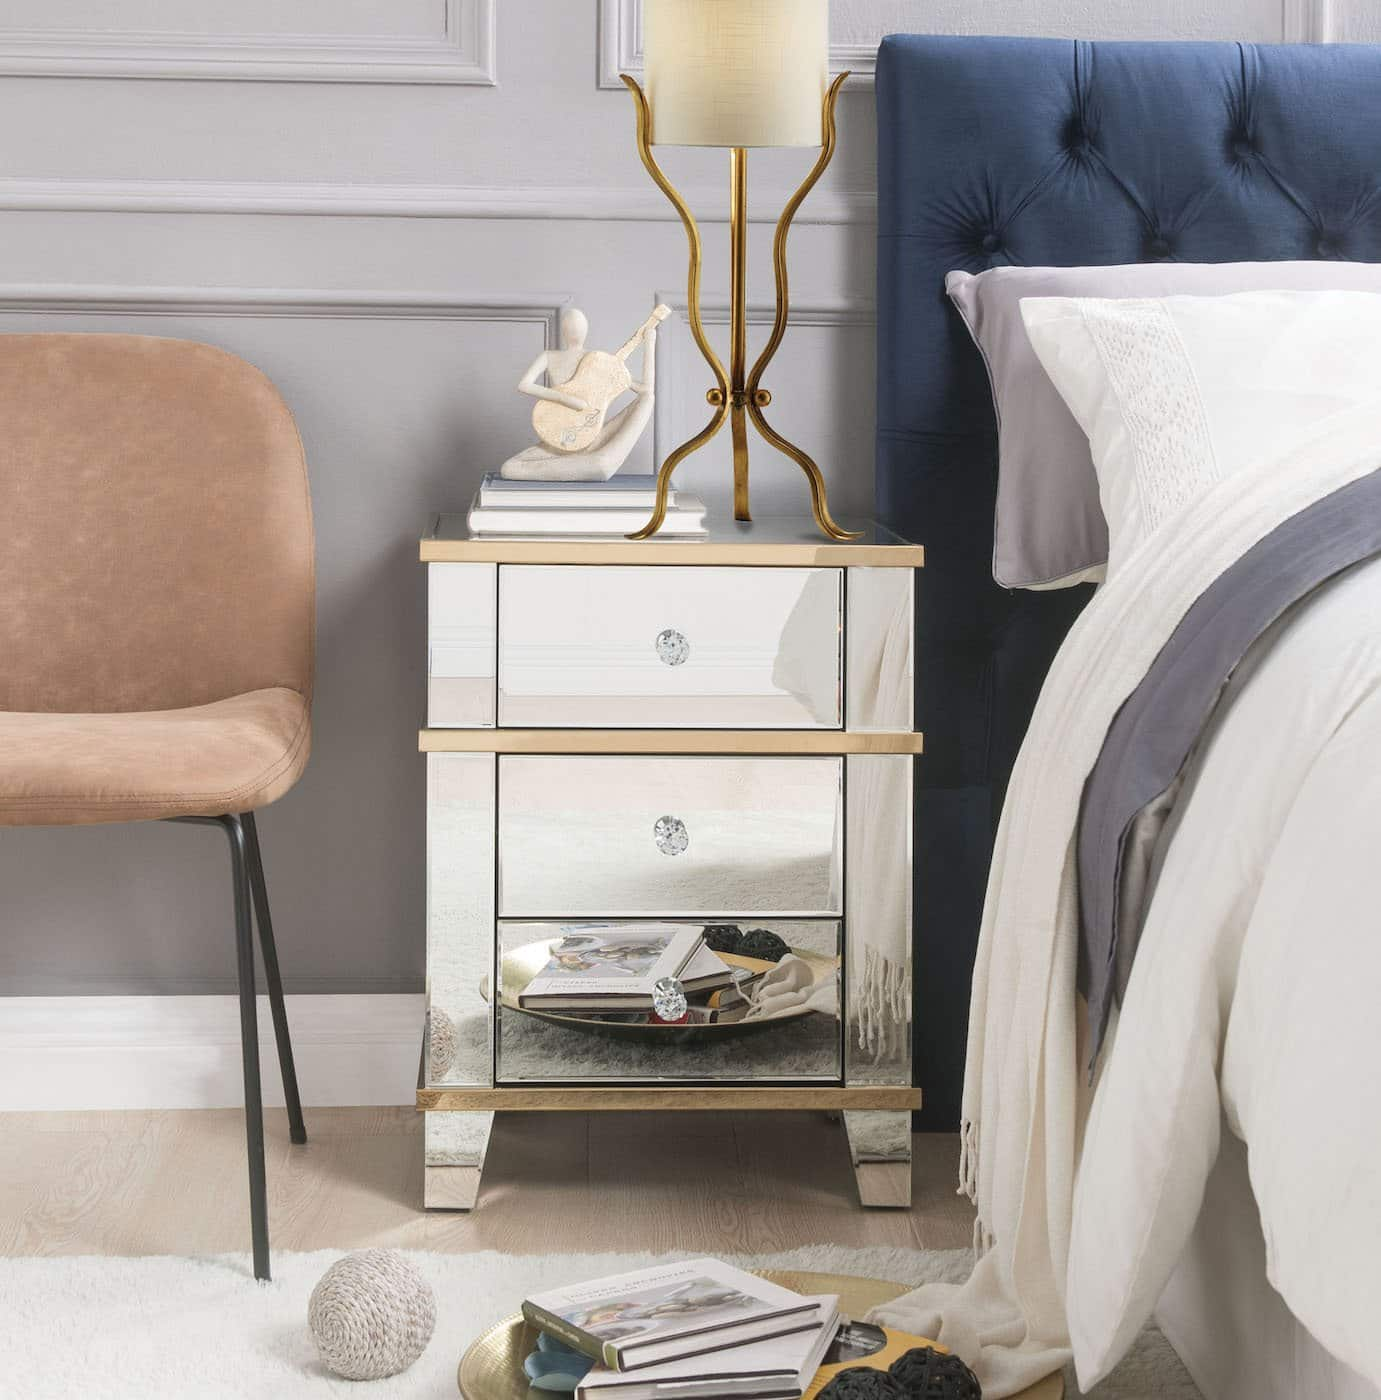 Osma Glam Mirrored End Table Kfrooms Mirrored Gold Nightstand End Table